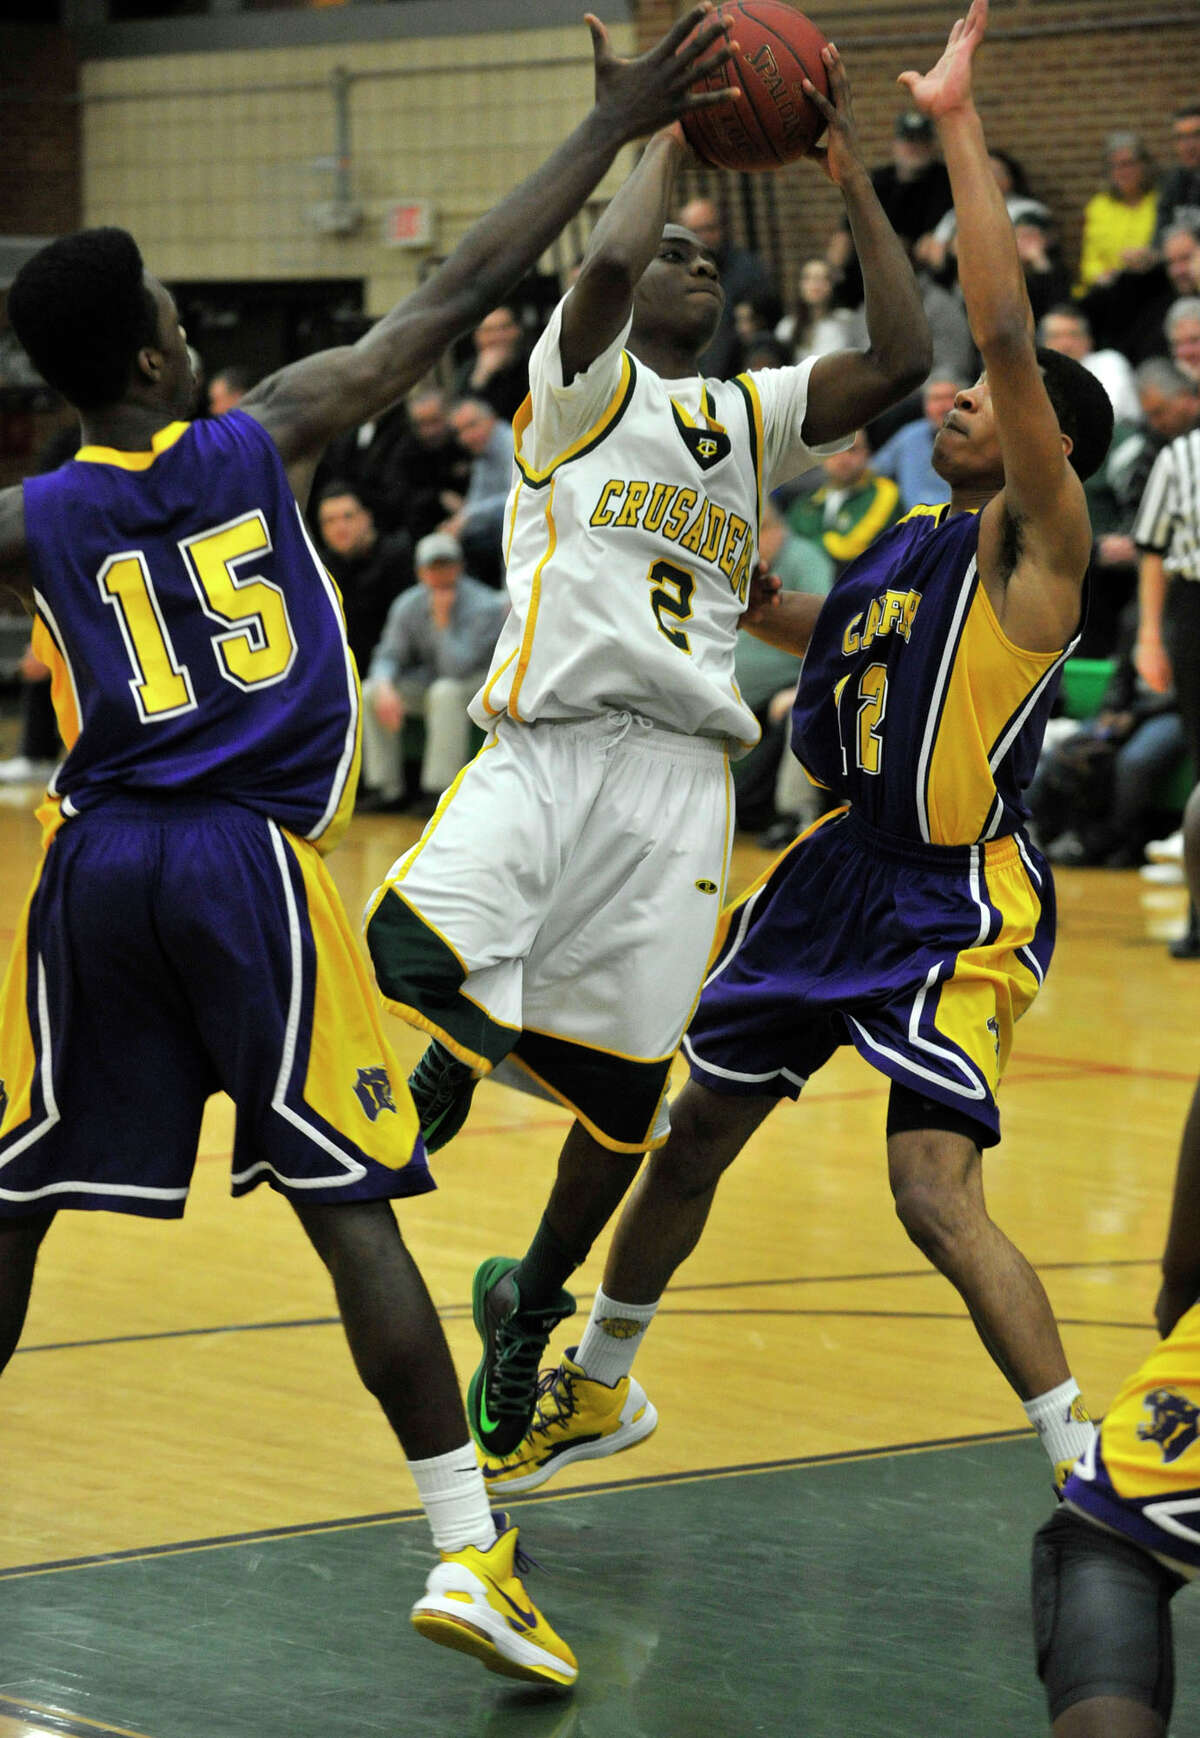 Trinity Catholic's Schadrac Casimir shoots while under pressure from Career Magnet's Matt Hamiliton, left, and Lyman Depriest during their Class L state quarterfinal game at Trinity Catholic High School in Stamford on Monday, March 11, 2013. Trinity Catholic won, 58-45.